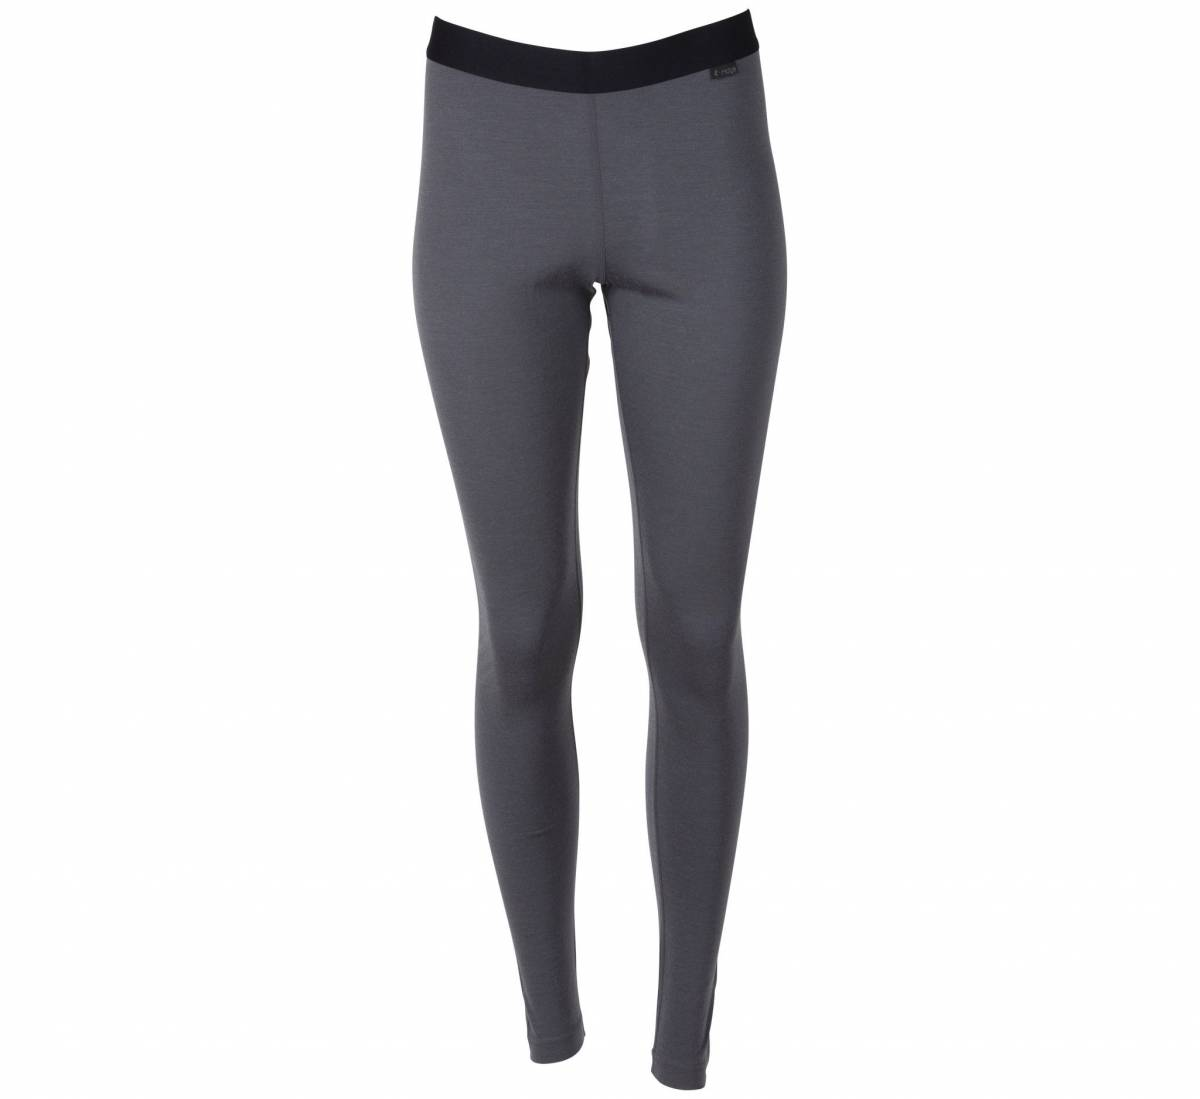 Ridge Merino base layer bottoms